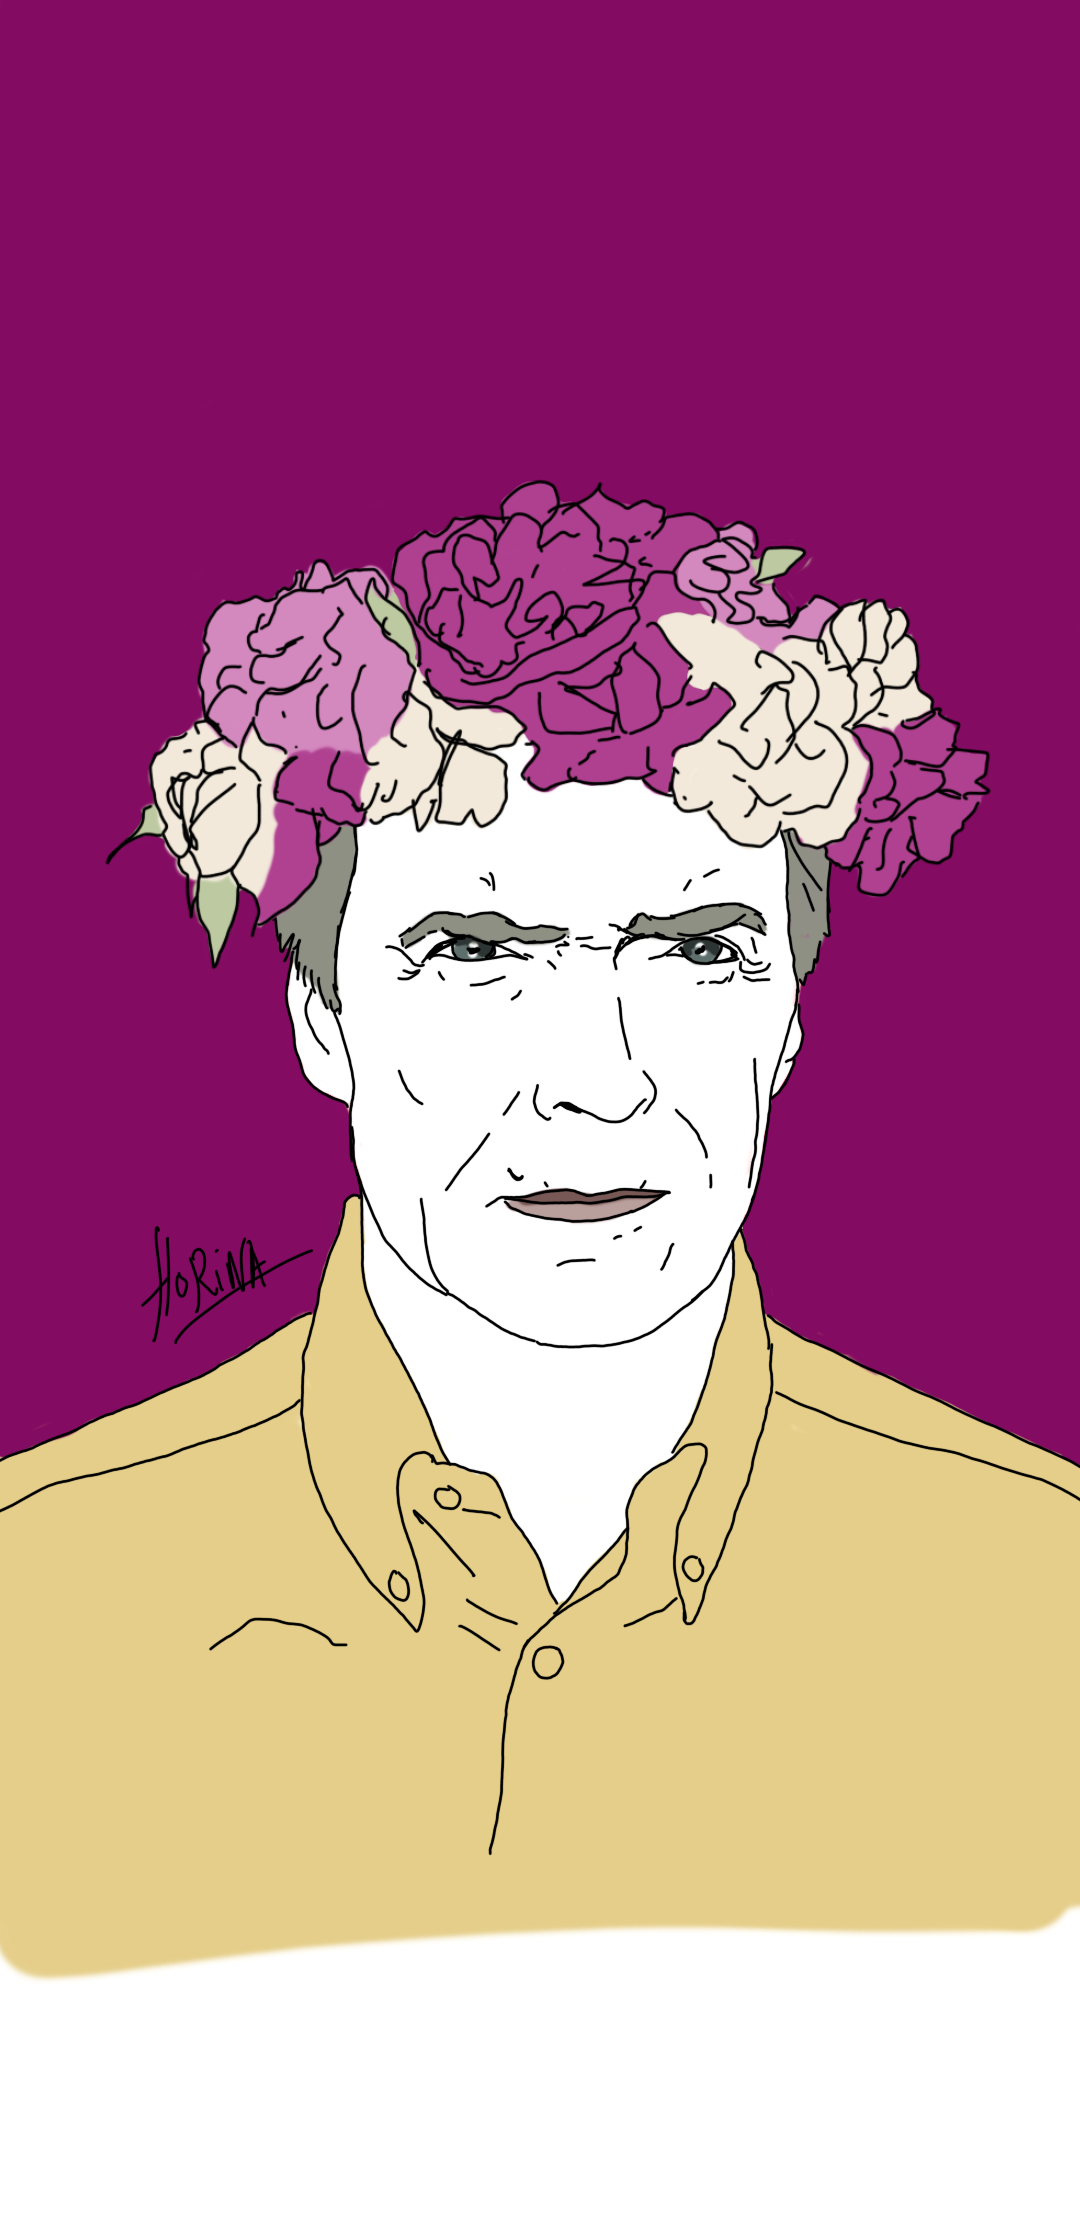 Clint-Eastwood_genrationkahlo-220119.png